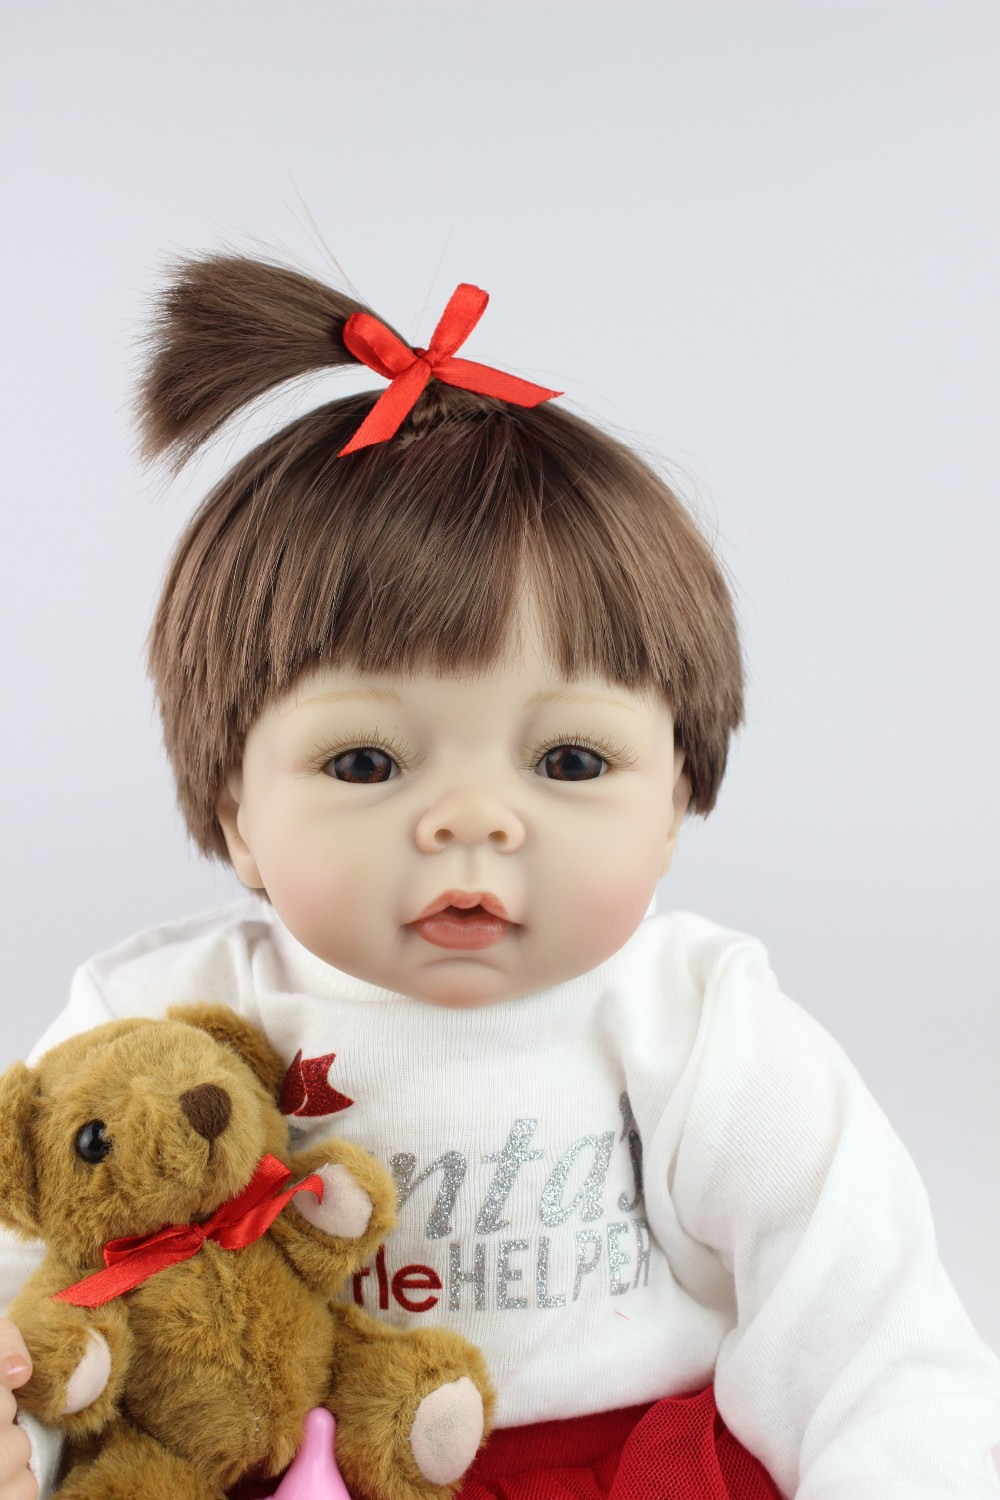 NPKCOLLECTION 22inch reborn babies doll bebe princess menina de silicone menina 55cm boneca for Children's toy Birthday gift